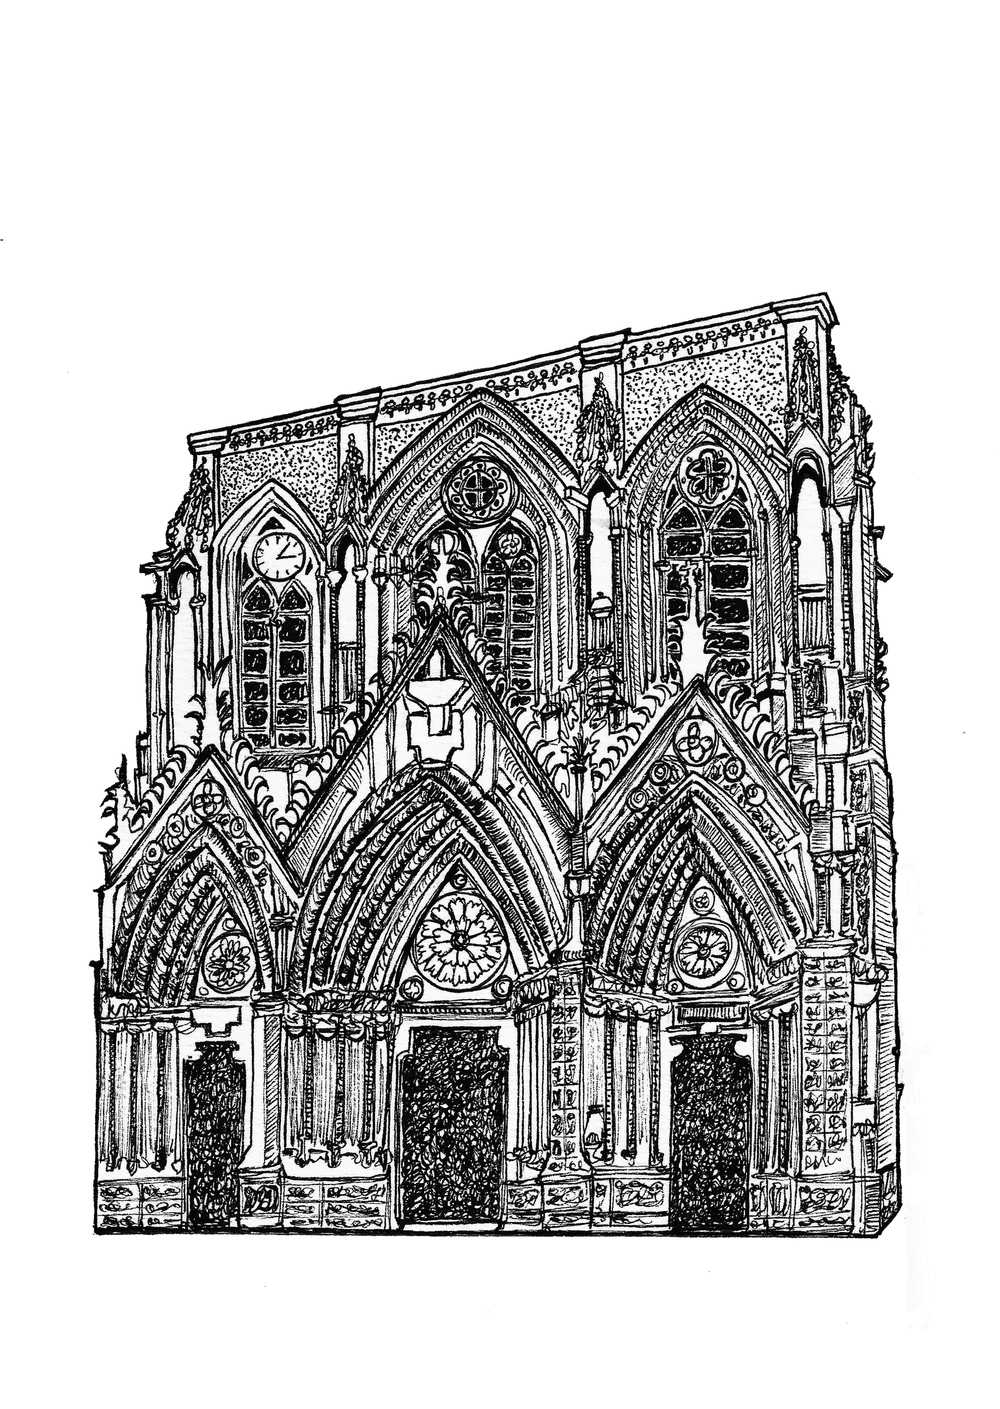 wedding church illustration.jpg